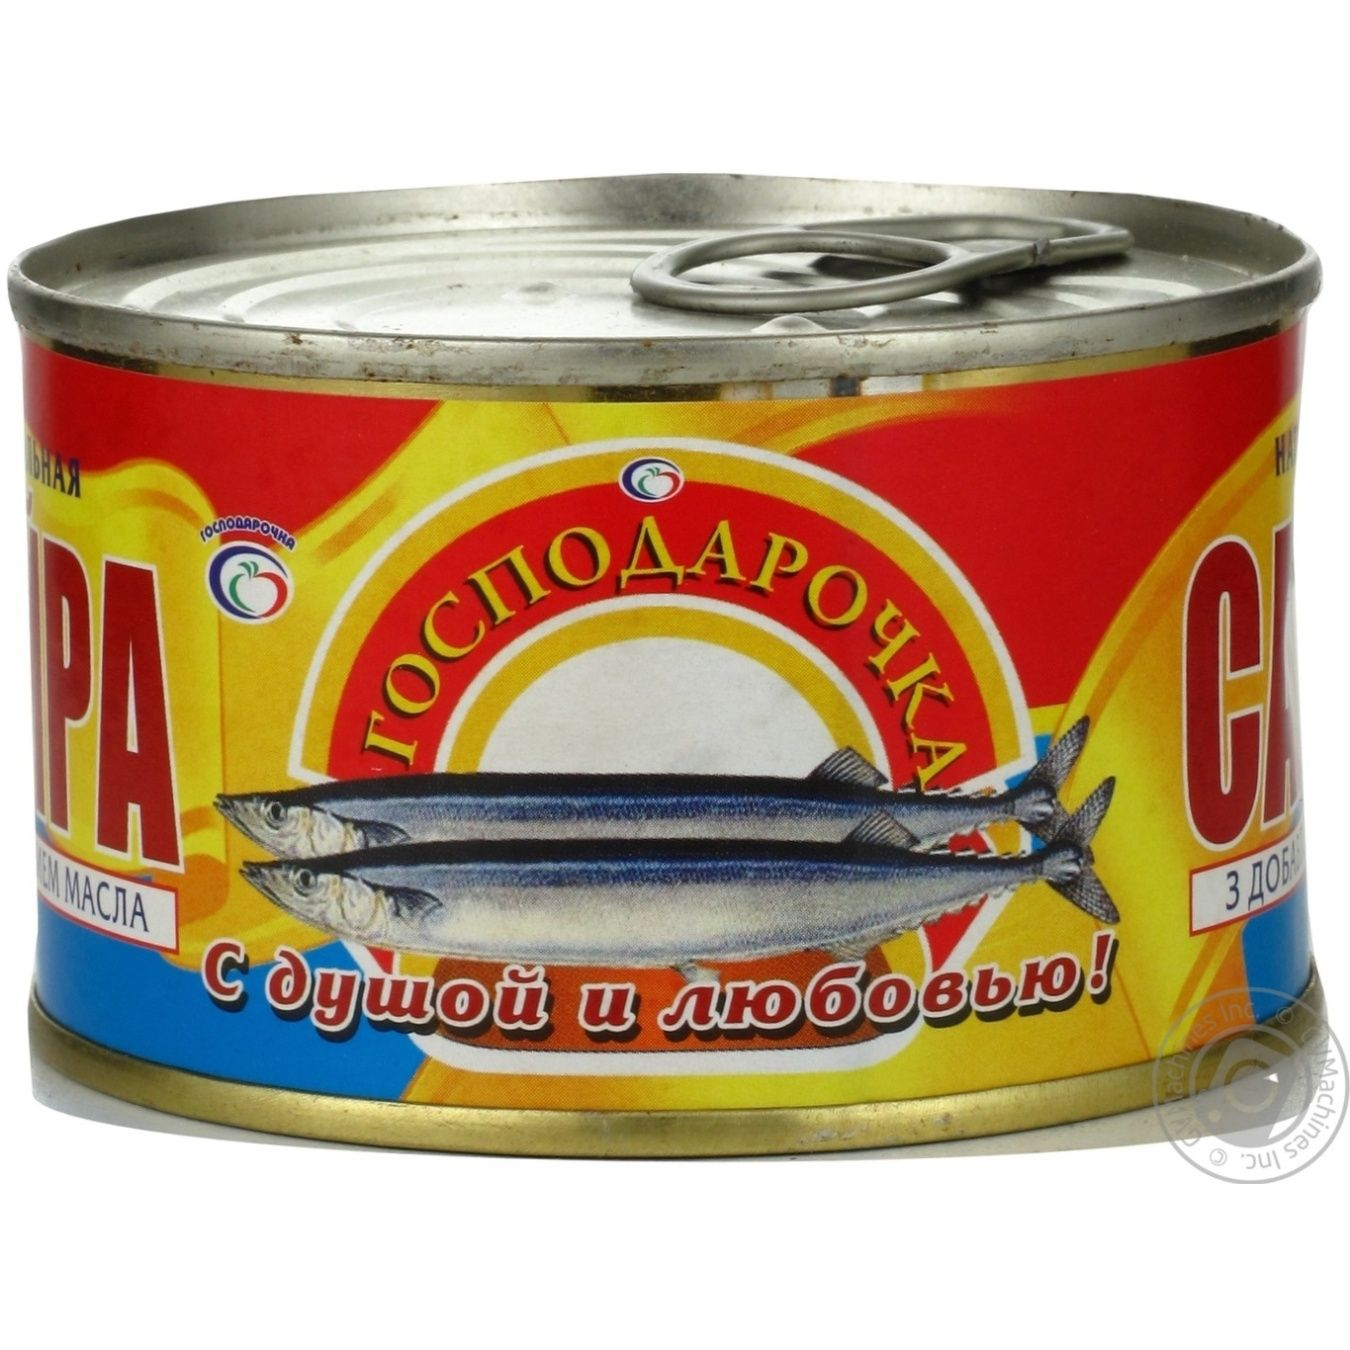 Canned Sardines Food Poisoning